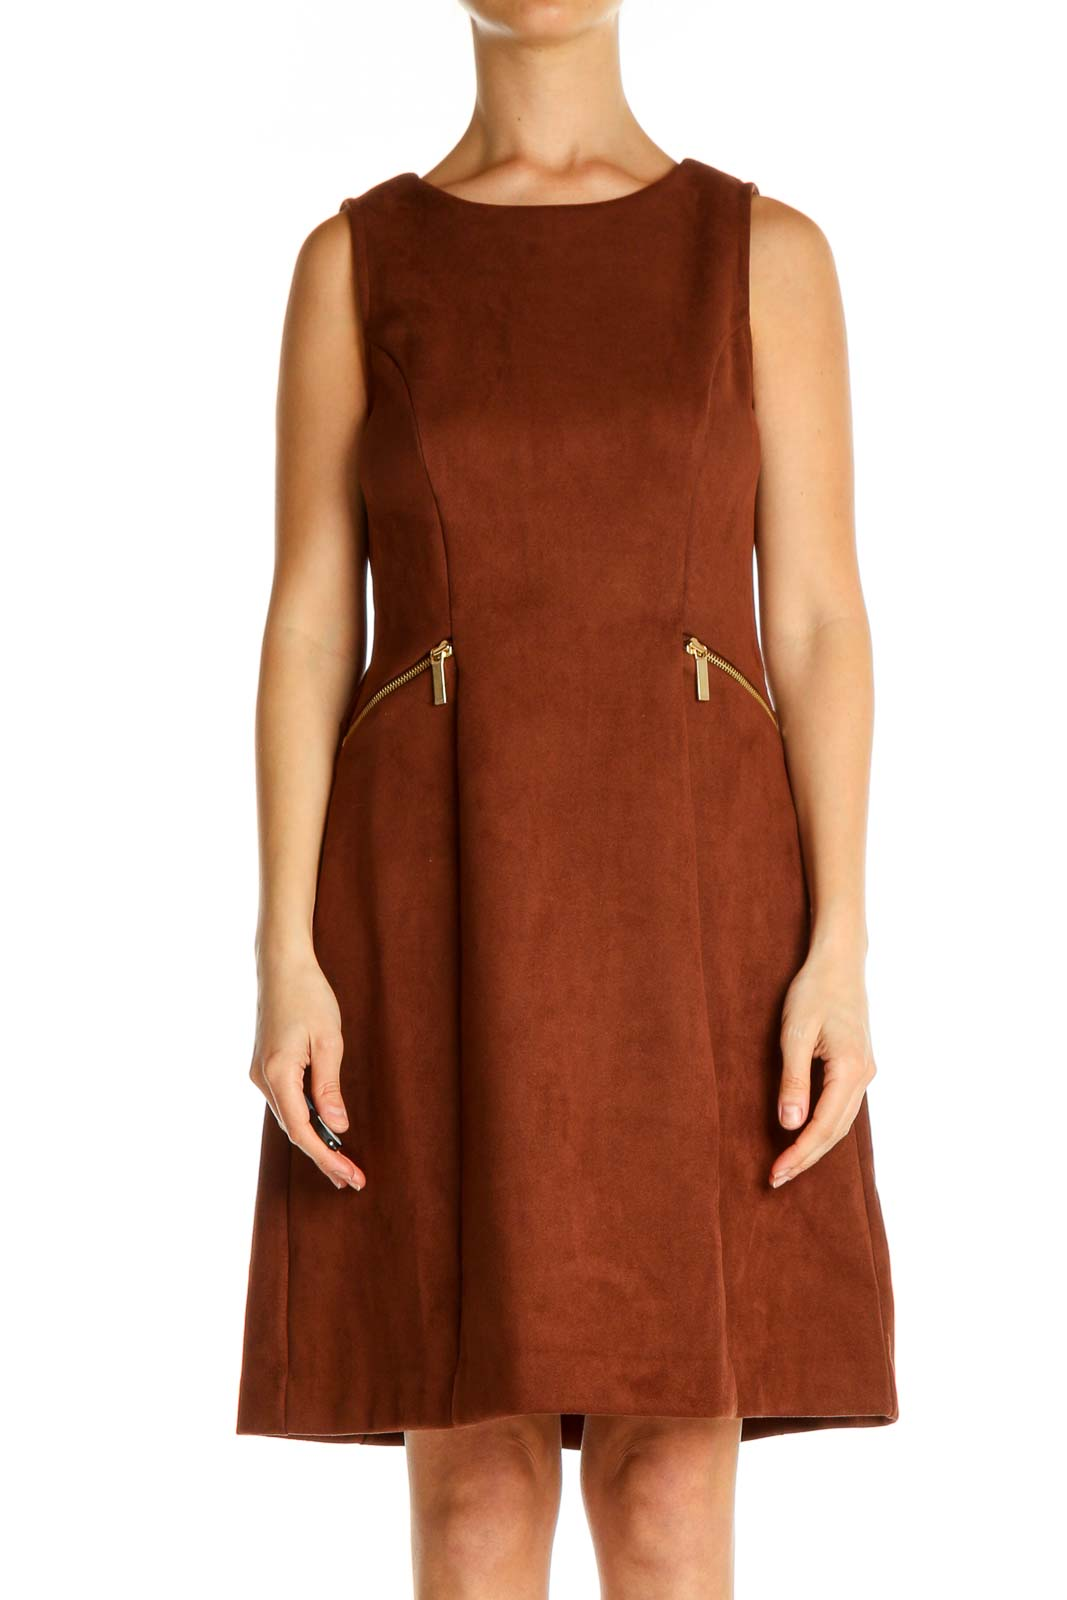 Brown Solid Classic A-Line Dress Front